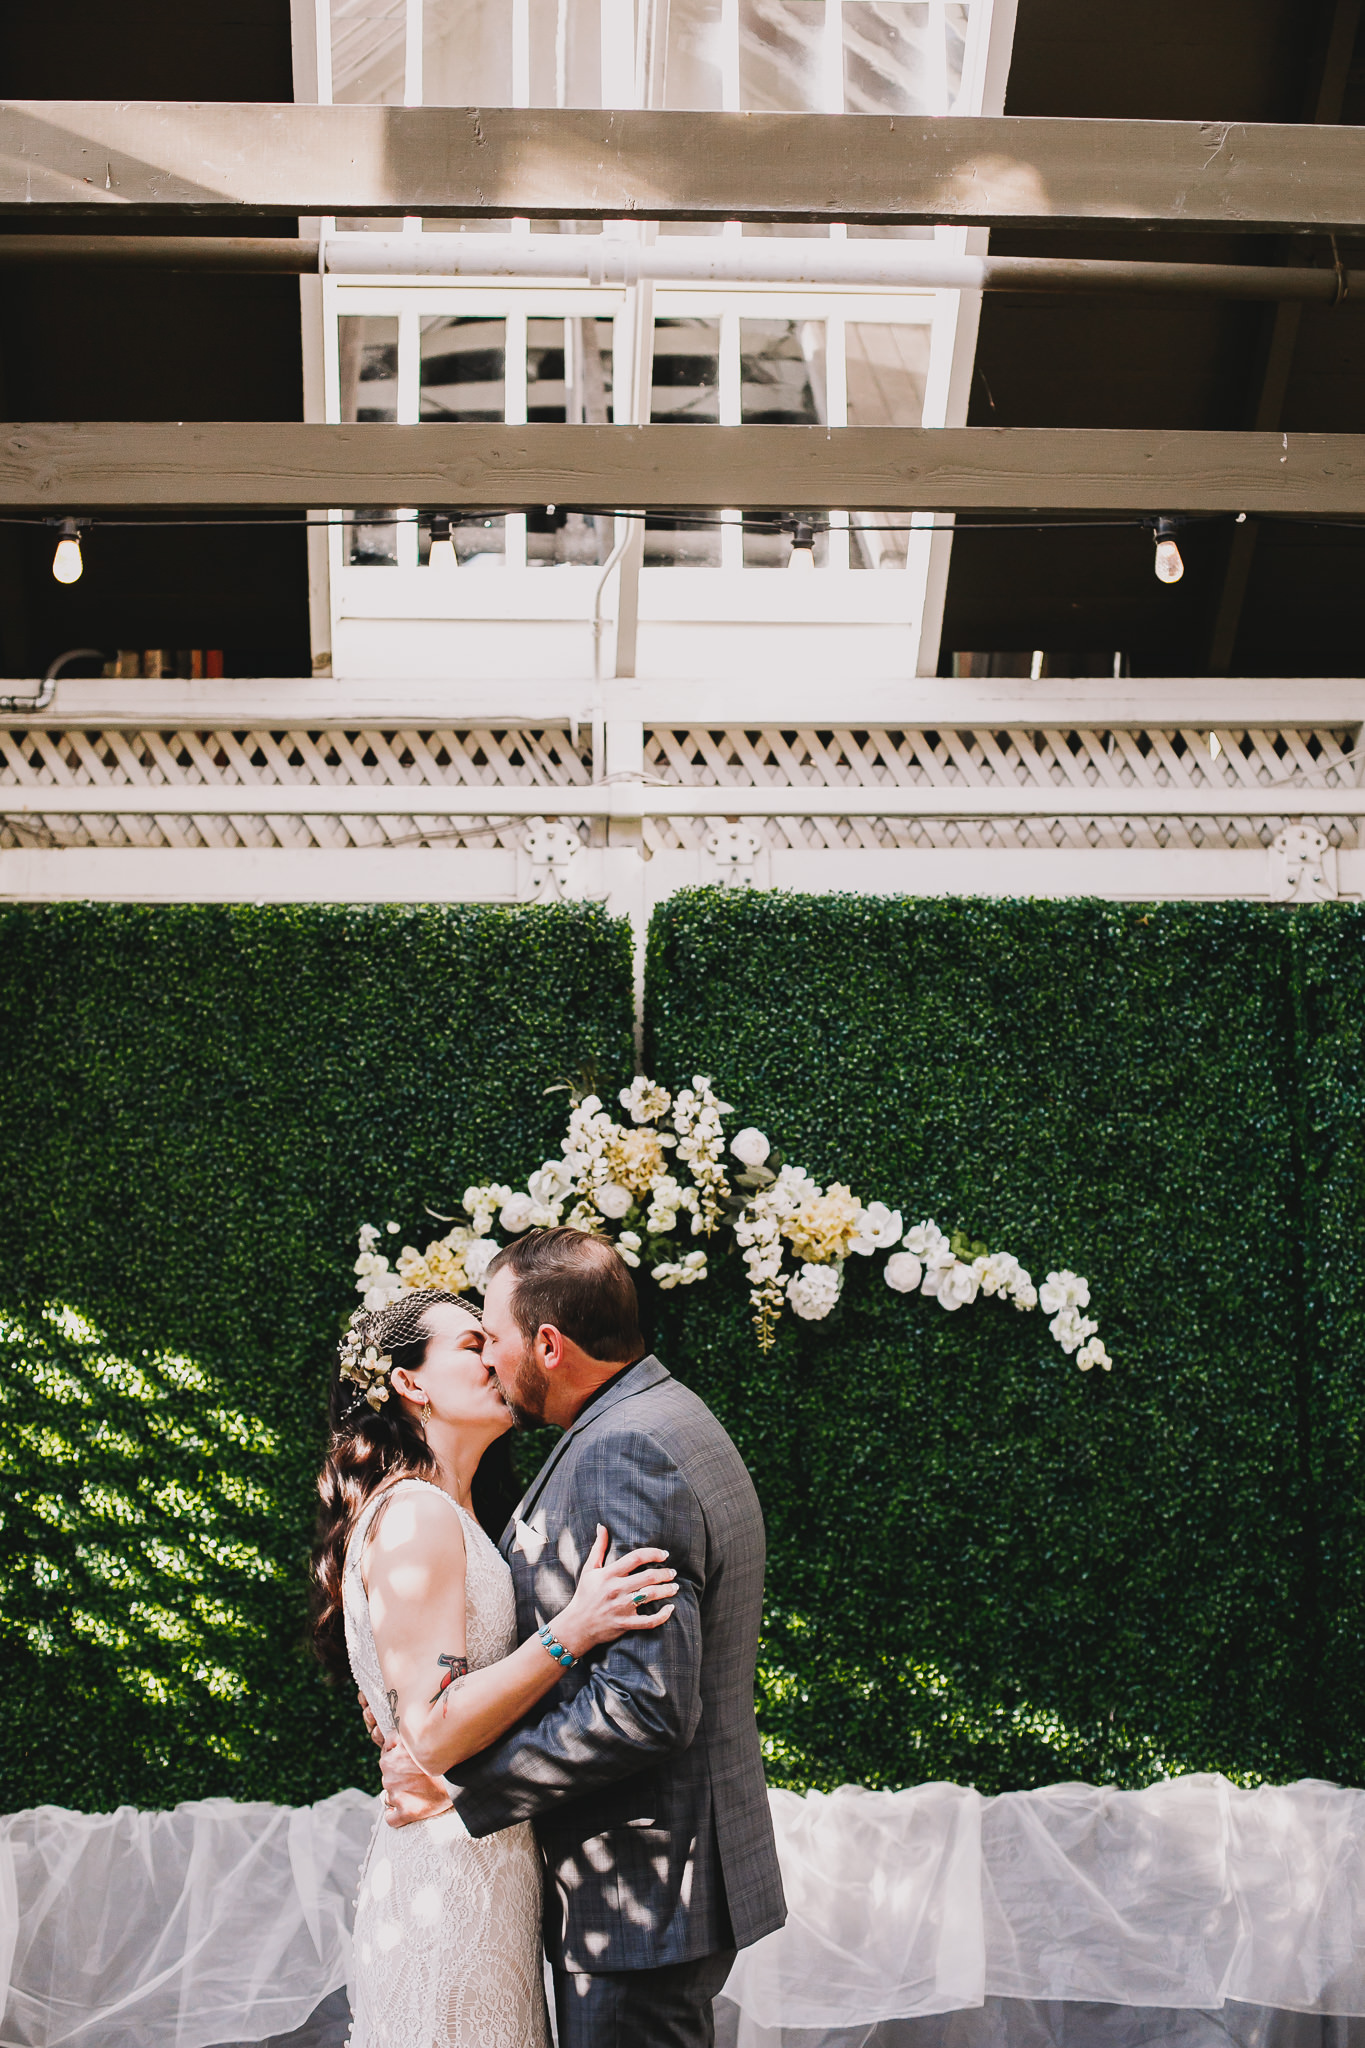 Archer Inspired Photography Sara and Aaron Winchester Mystery House NorCal San Jose California Wedding Photographer-166.jpg